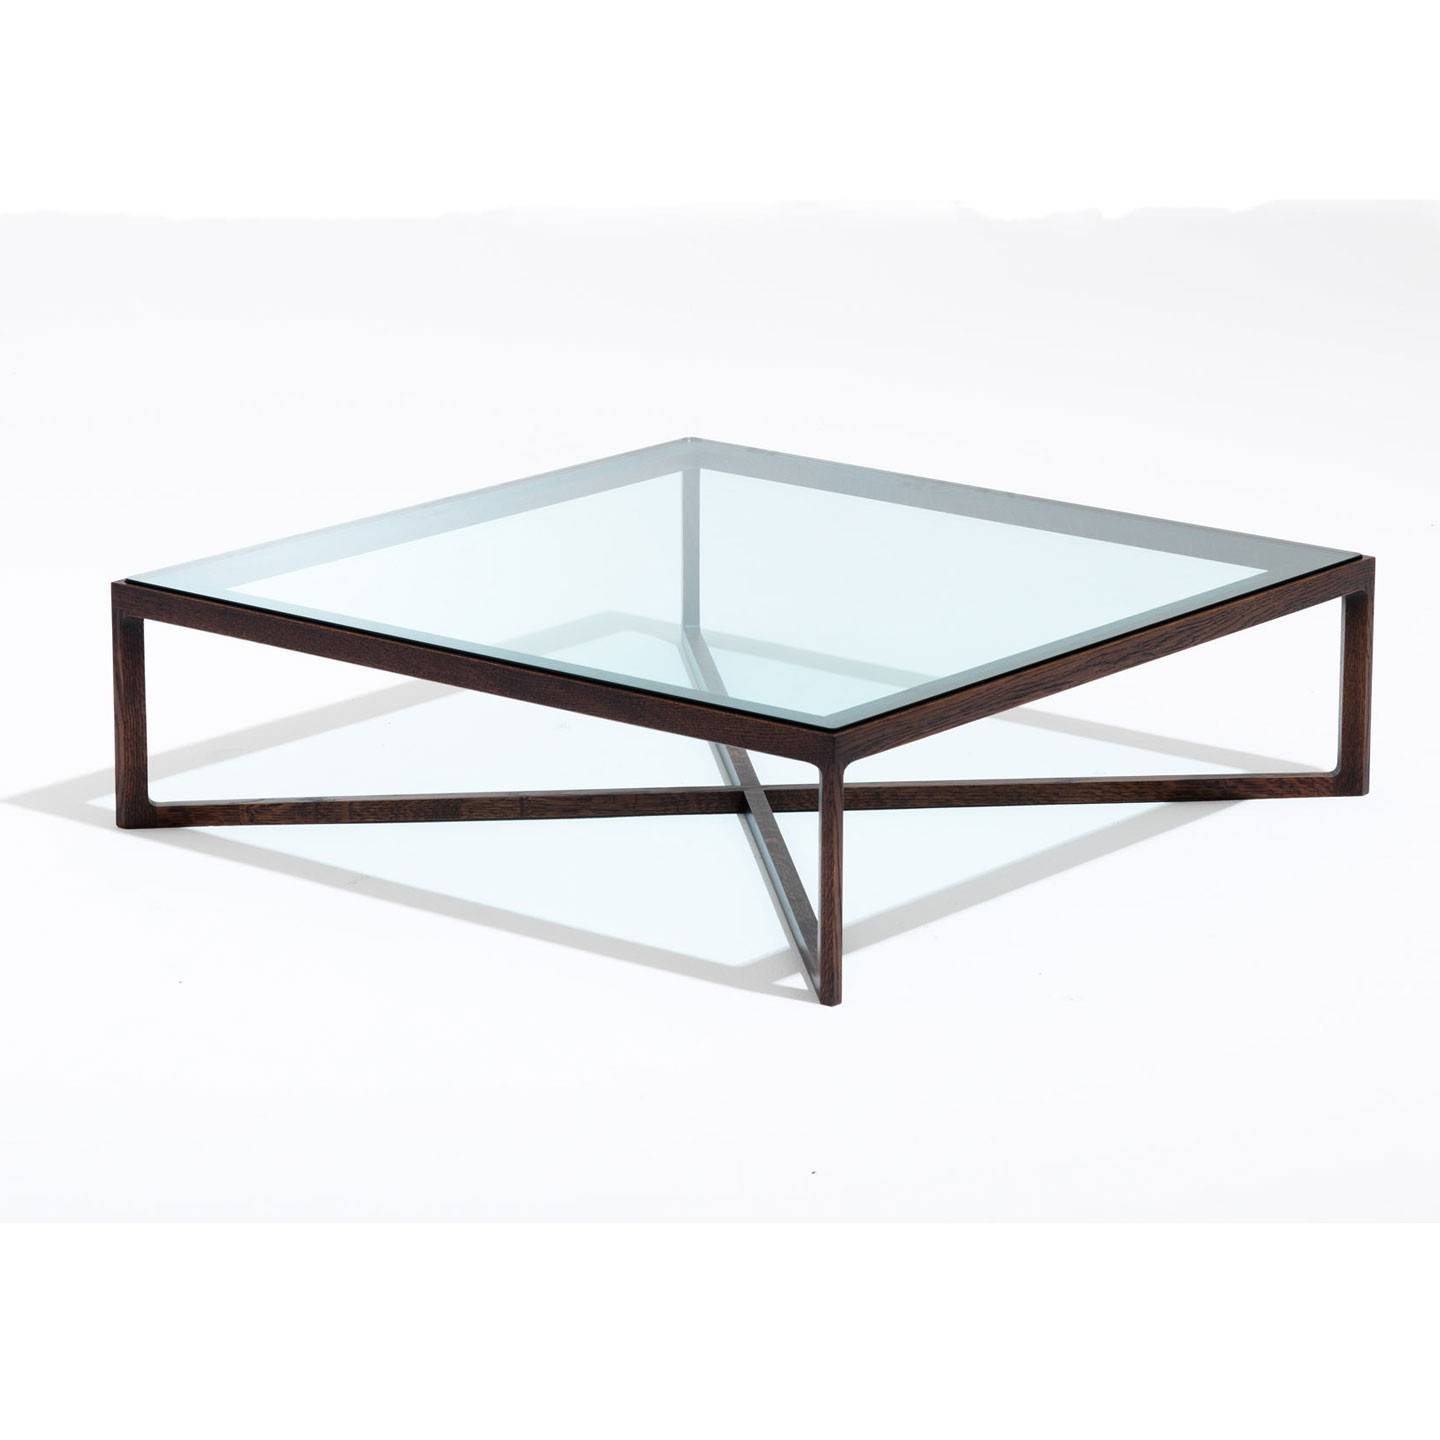 Square Glass Coffee Table For Living Room Decoration - Ruchi Designs regarding Square Glass Coffee Table (Image 13 of 15)